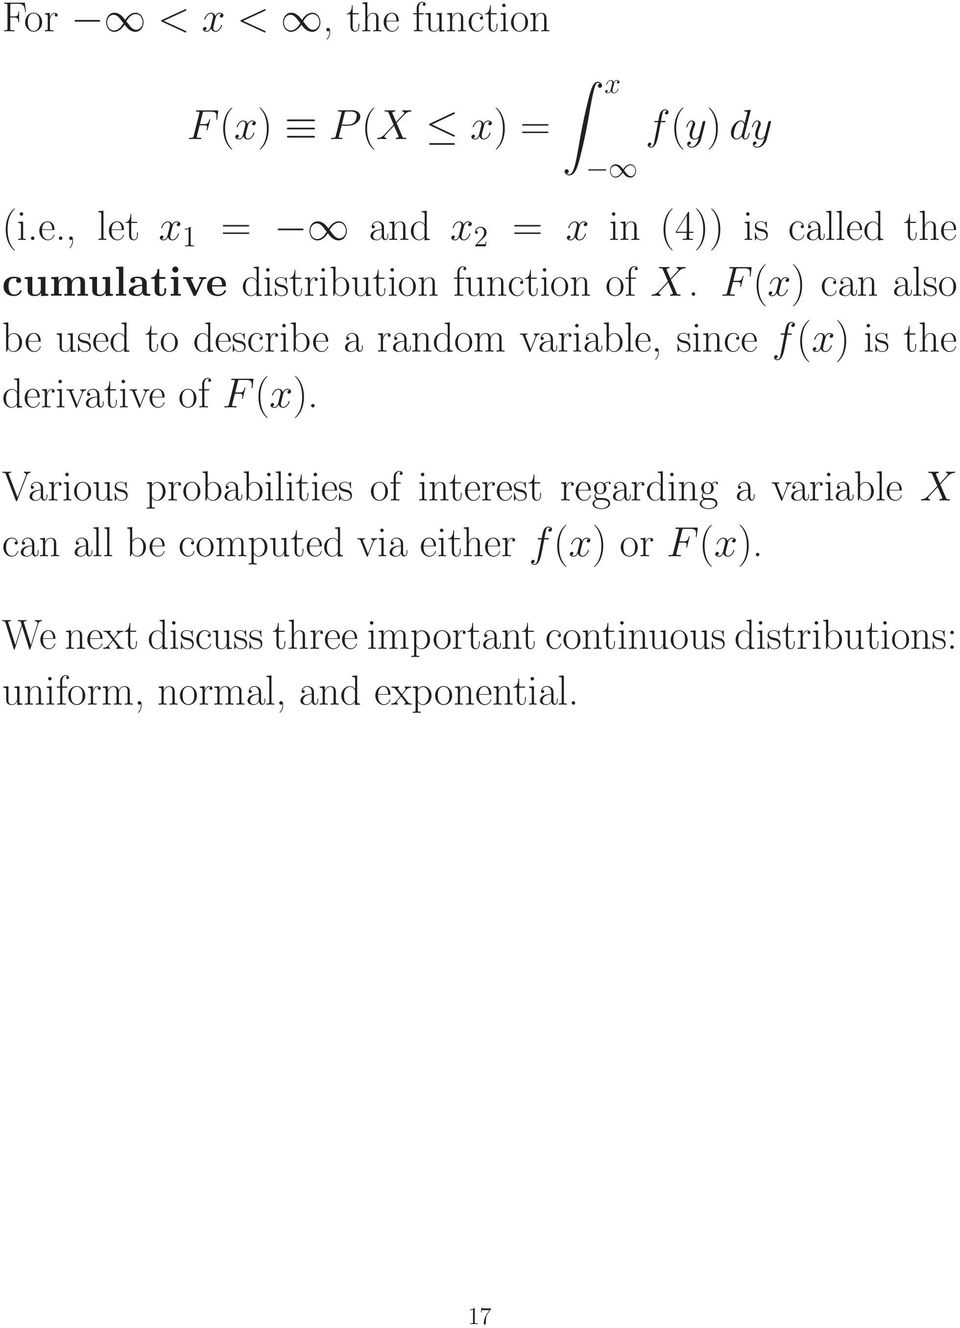 Various probabilities of interest regarding a variable X can all be computed via either f(x) or F(x).